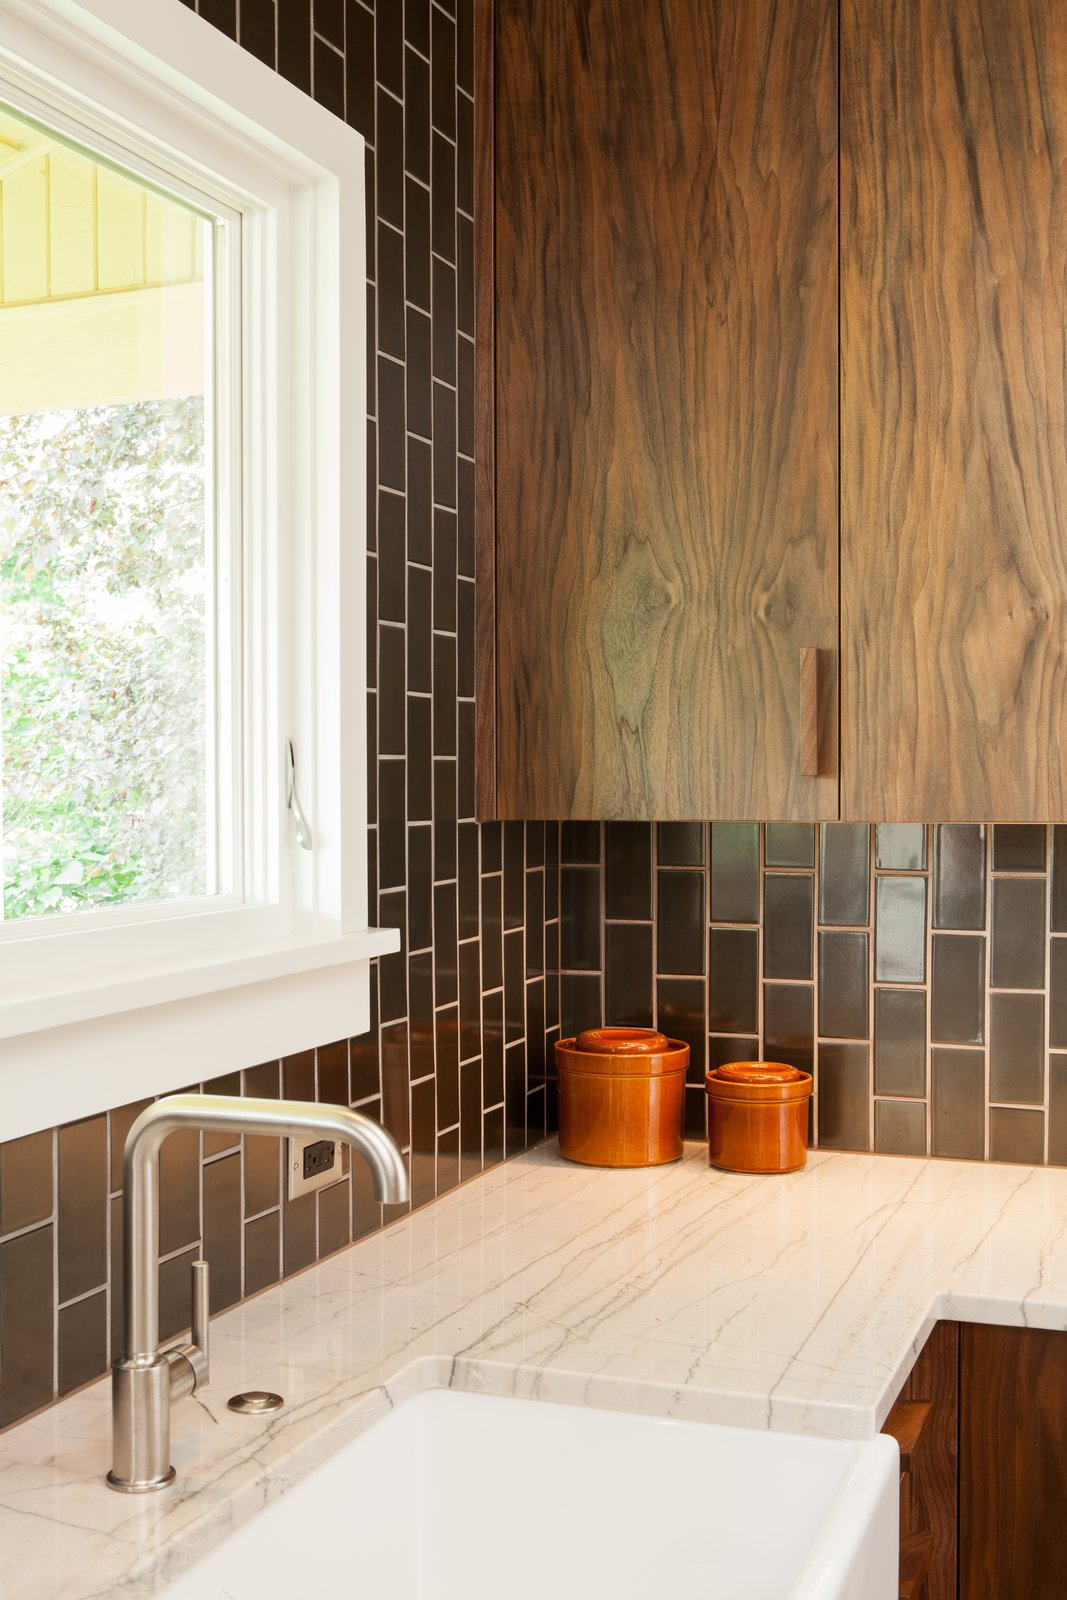 Kitchen, Granite Counter, Ceramic Tile Backsplashe, and Wood Cabinet Walnut + gunmetal: Our goal was to be bold but not cold. Handmade tile adds a humane touch. Richly textured walnut cabinetry and pulls add warmth.  Holly + Magda by Howells Architecture + Design